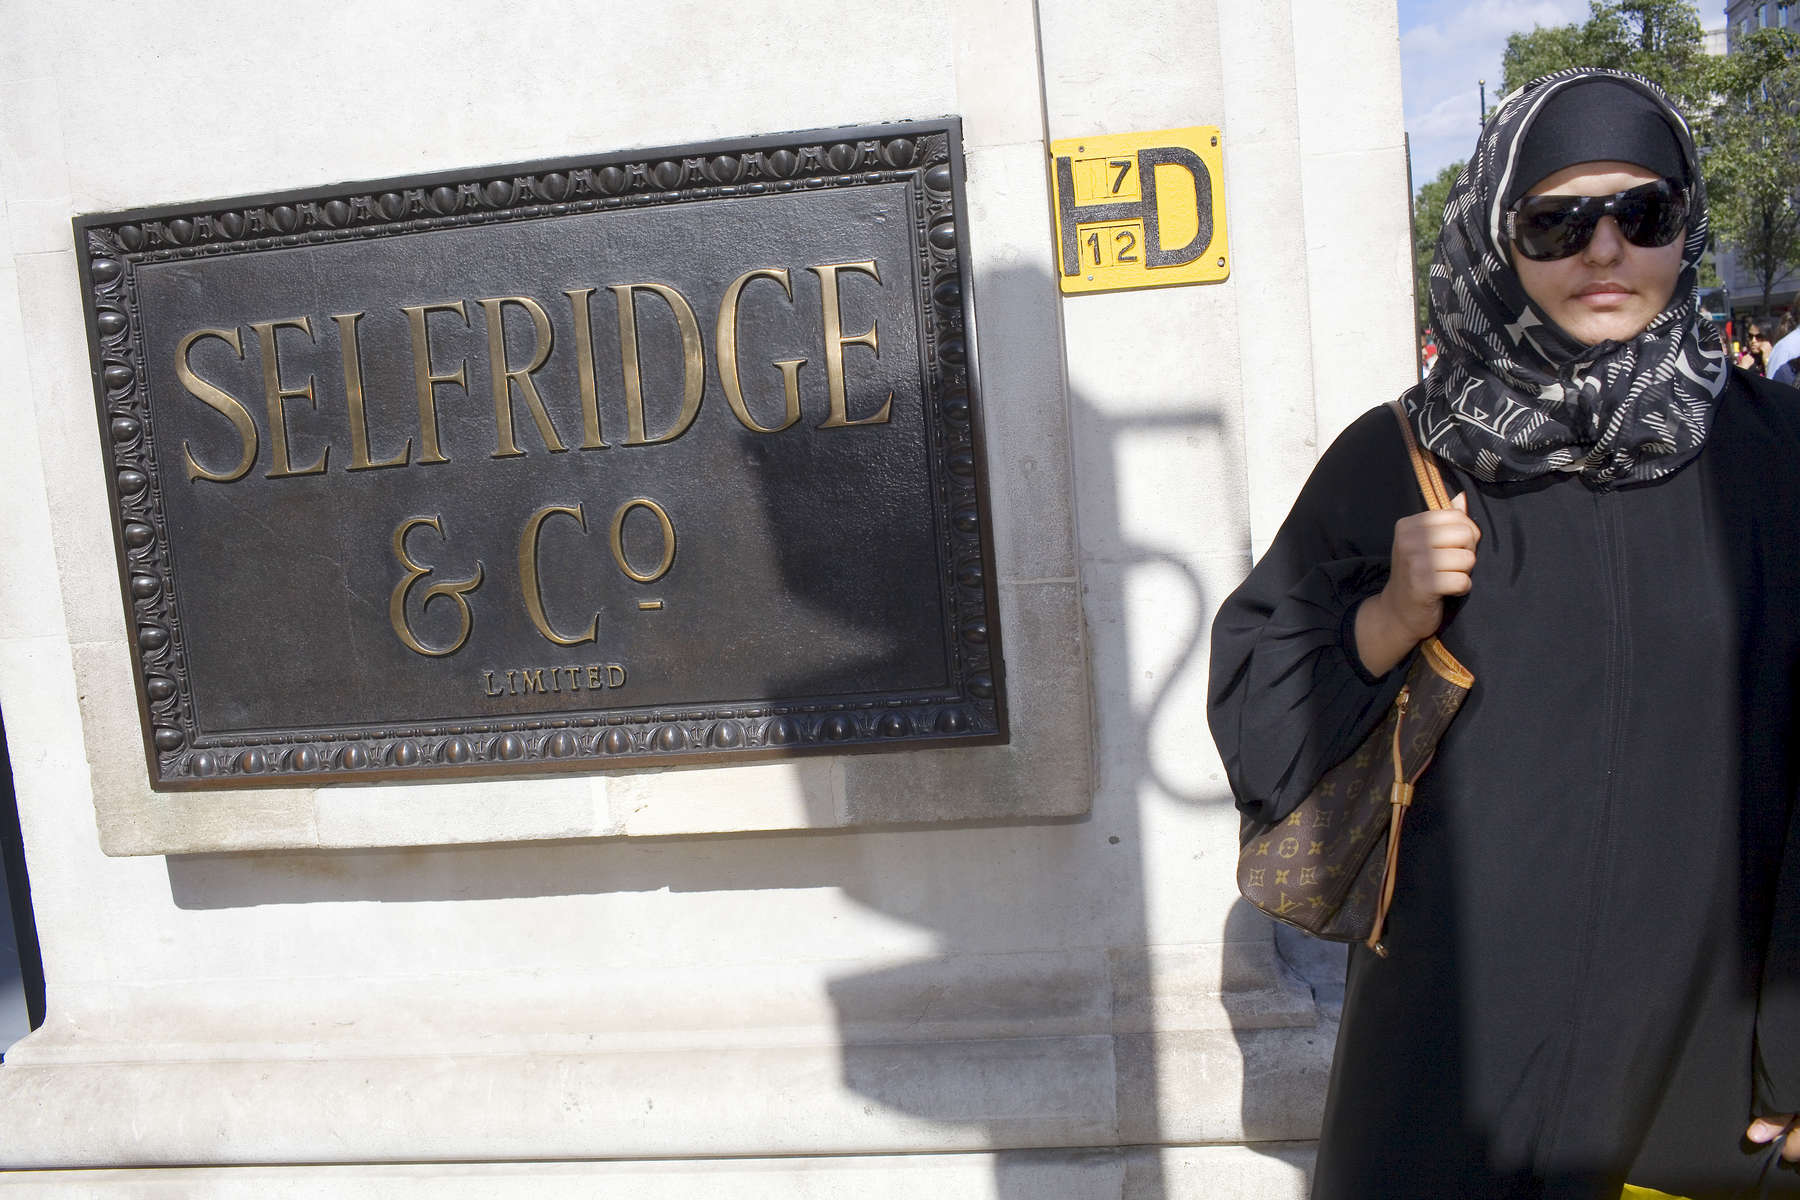 An Arab woman wearing sunglasses passes by the Selfridge & Co store located on London's busy Oxford Street, one of the busiest in Europe.Arabs have been visiting London for centuries and around 300,000 Arabs have chosen to make the capital their home and a further half a million throughout the UK. The number swells significantly from visitors during the summer. Saudi Arabians spend the most on property in London choosing Belgravia, Kenington, Knightsbridge and Holland Park. Arab culture continues to increase in visibility throughout the capital as integration into this most transient of city's continues.©Peter Dench/Reportage by Getty Images